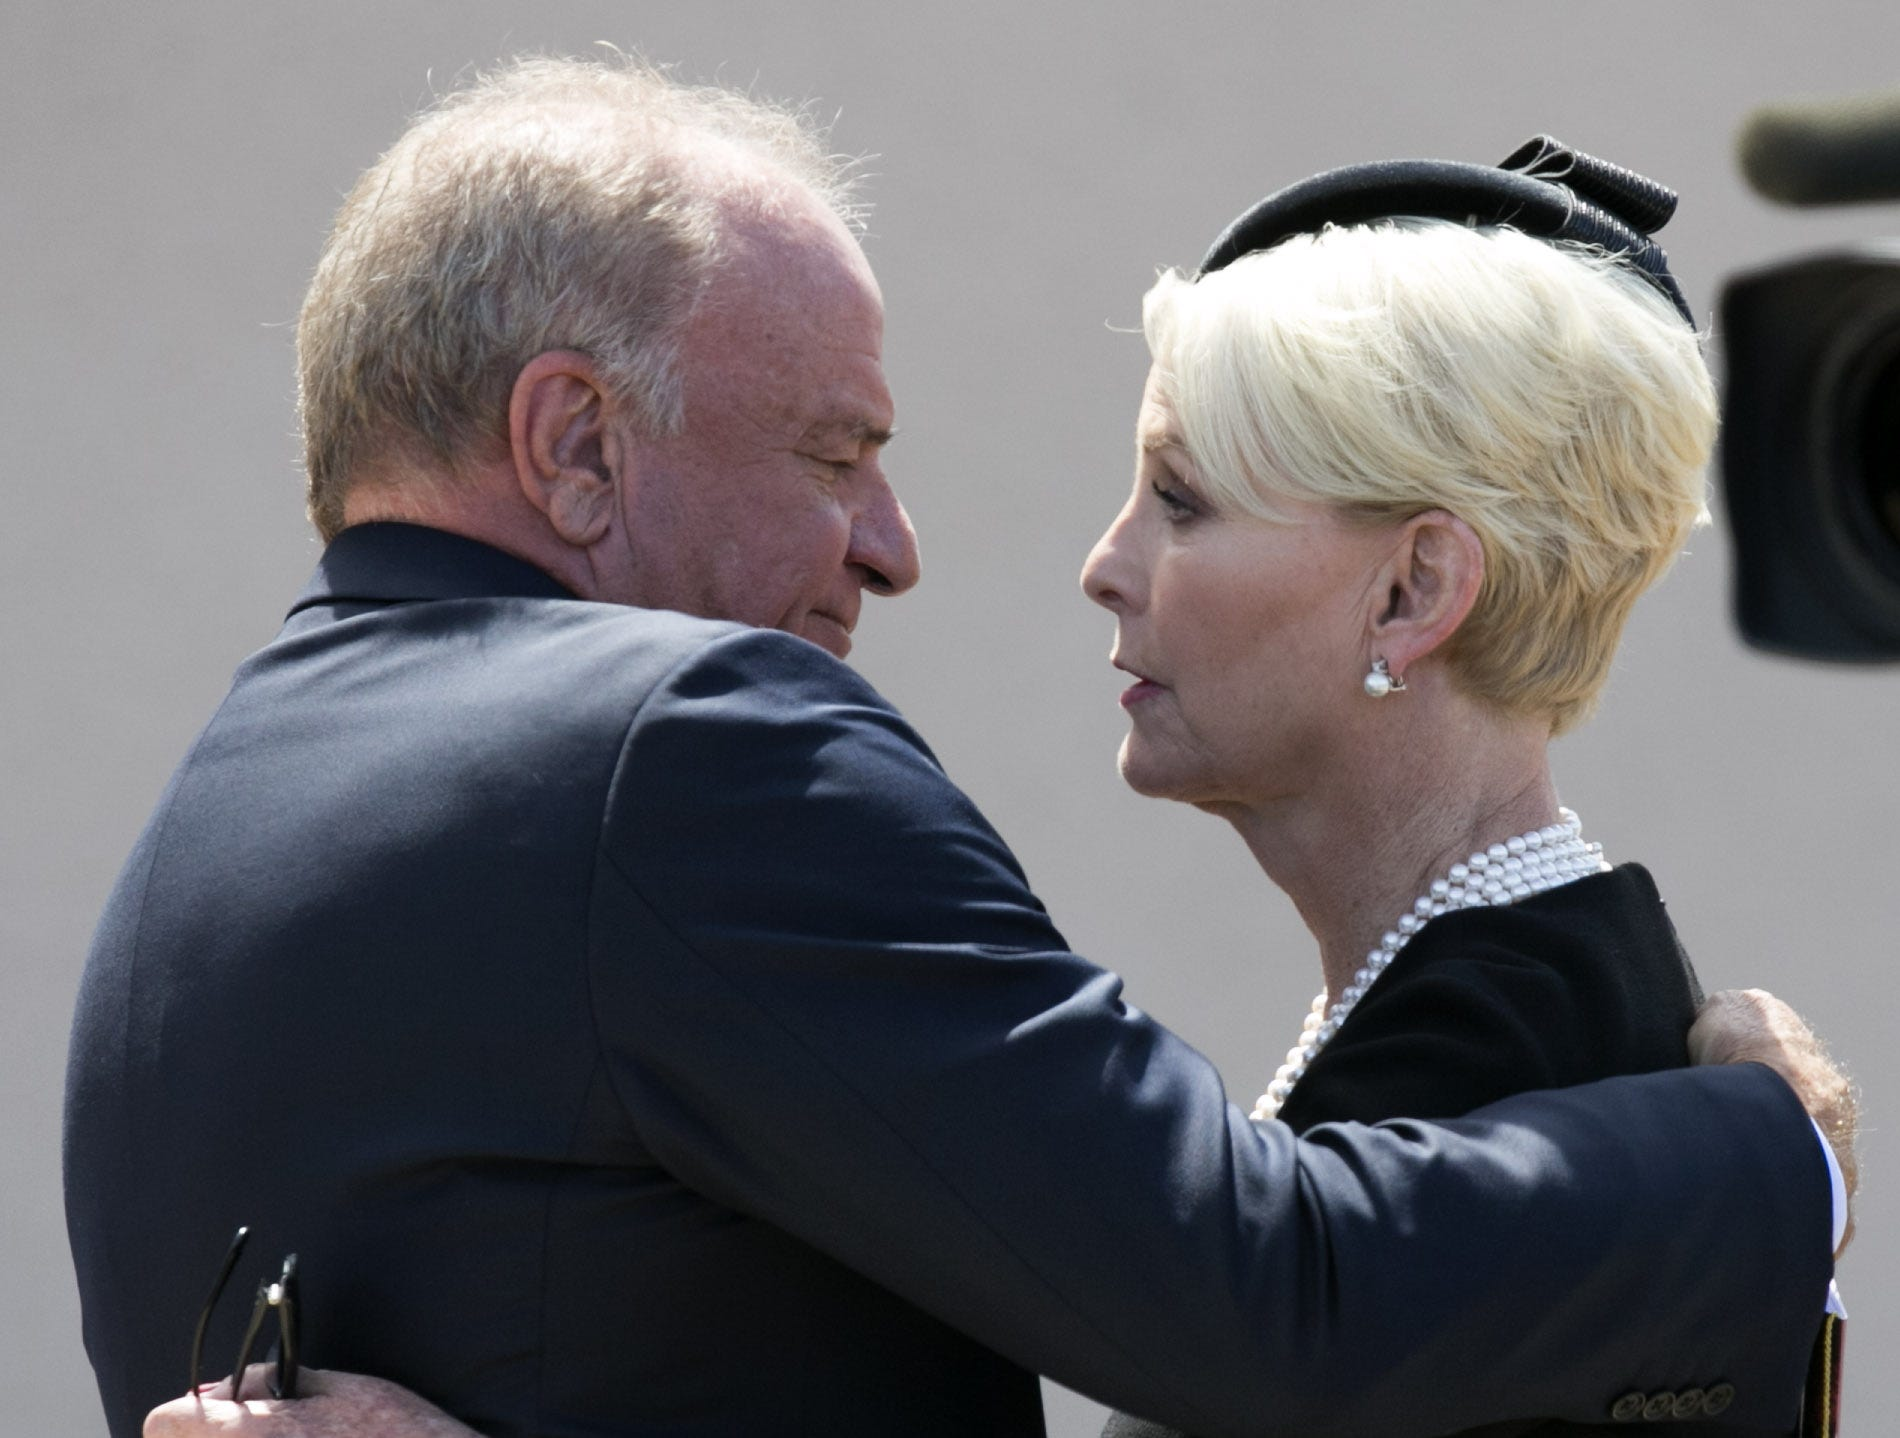 Grant Woods, a former Arizona attorney general and longtime McCain family friend, hugs Cindy McCain at North Phoenix Baptist Church in Phoenix, Aug. 30, 2018.